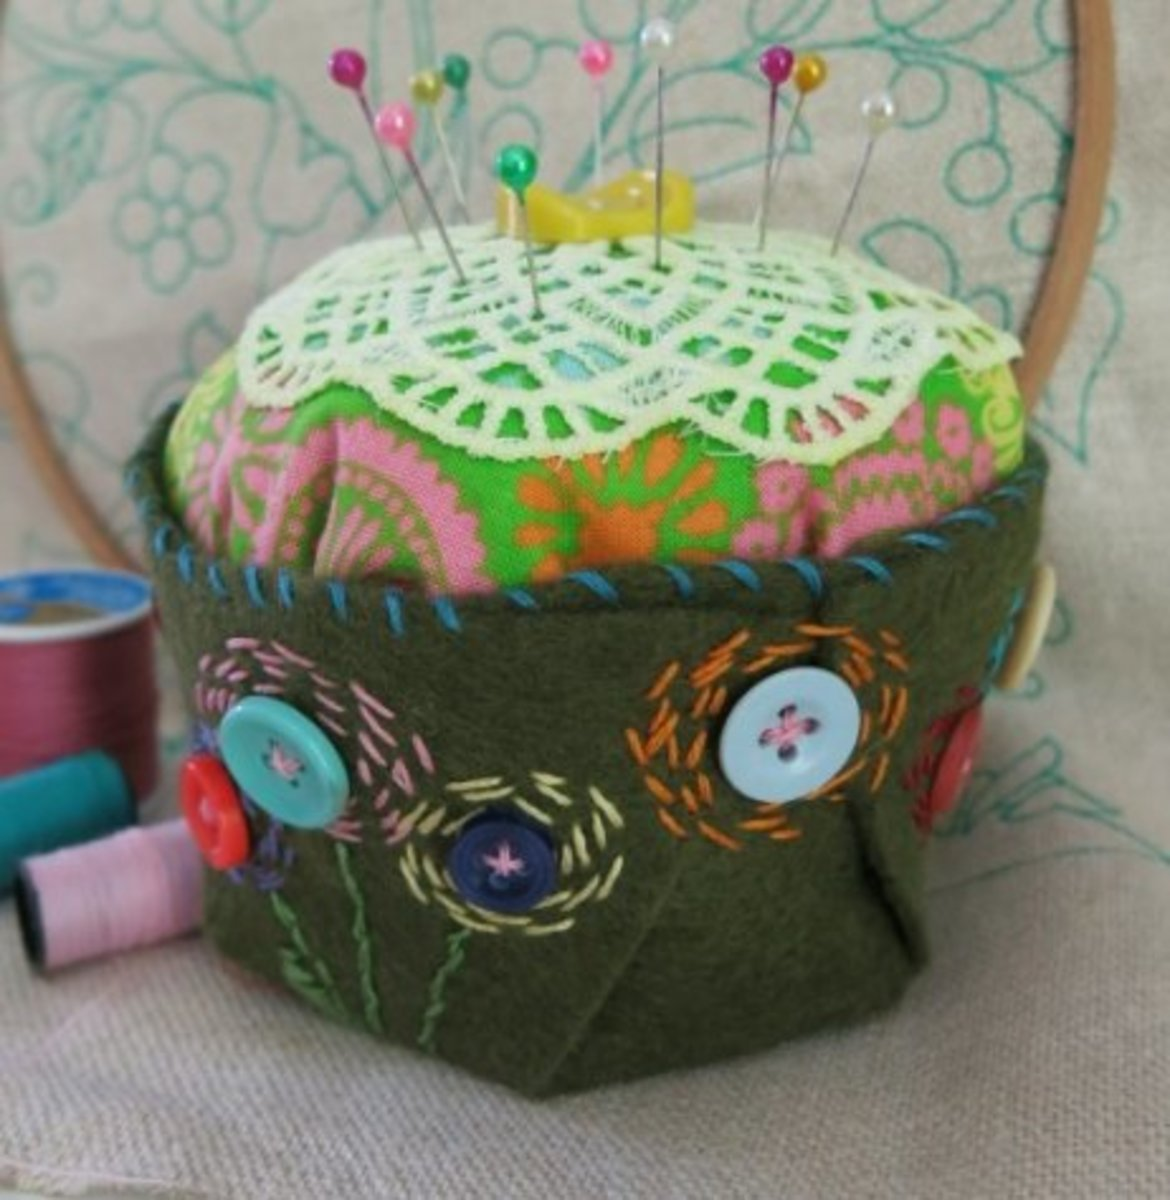 Forming the bottom of your pincushion into a cup